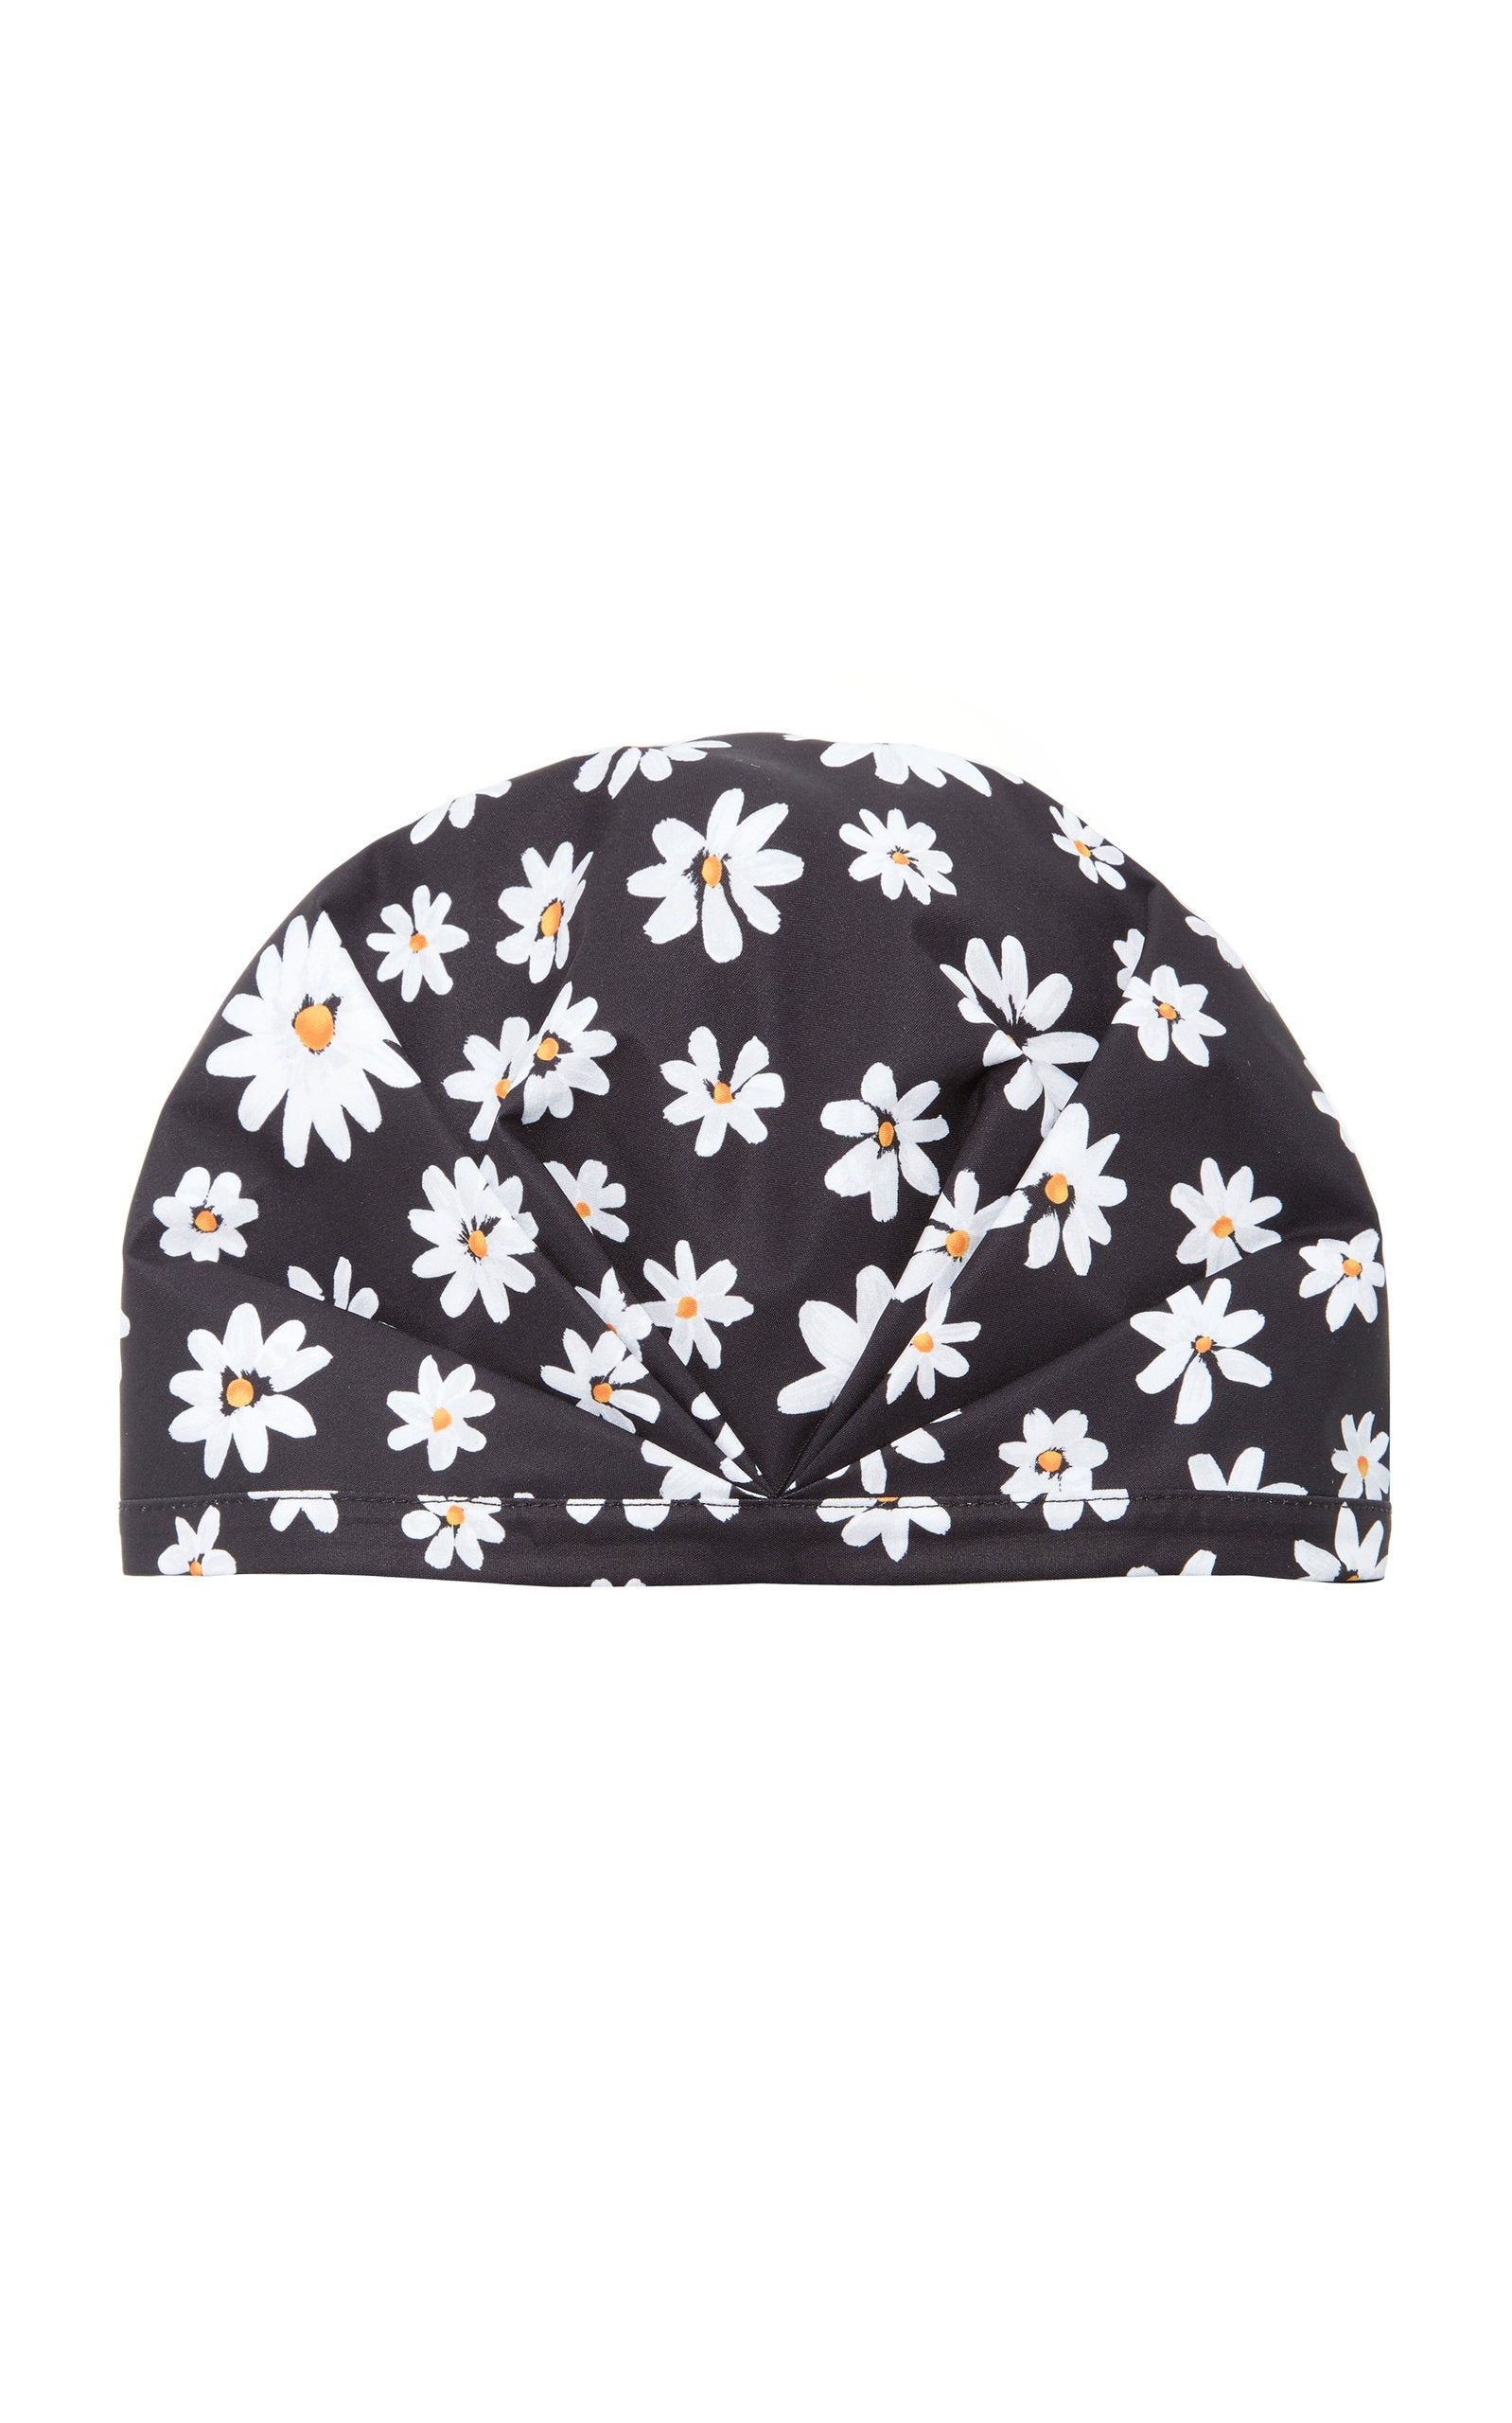 Shhhowercap - The Delia Shower Cap